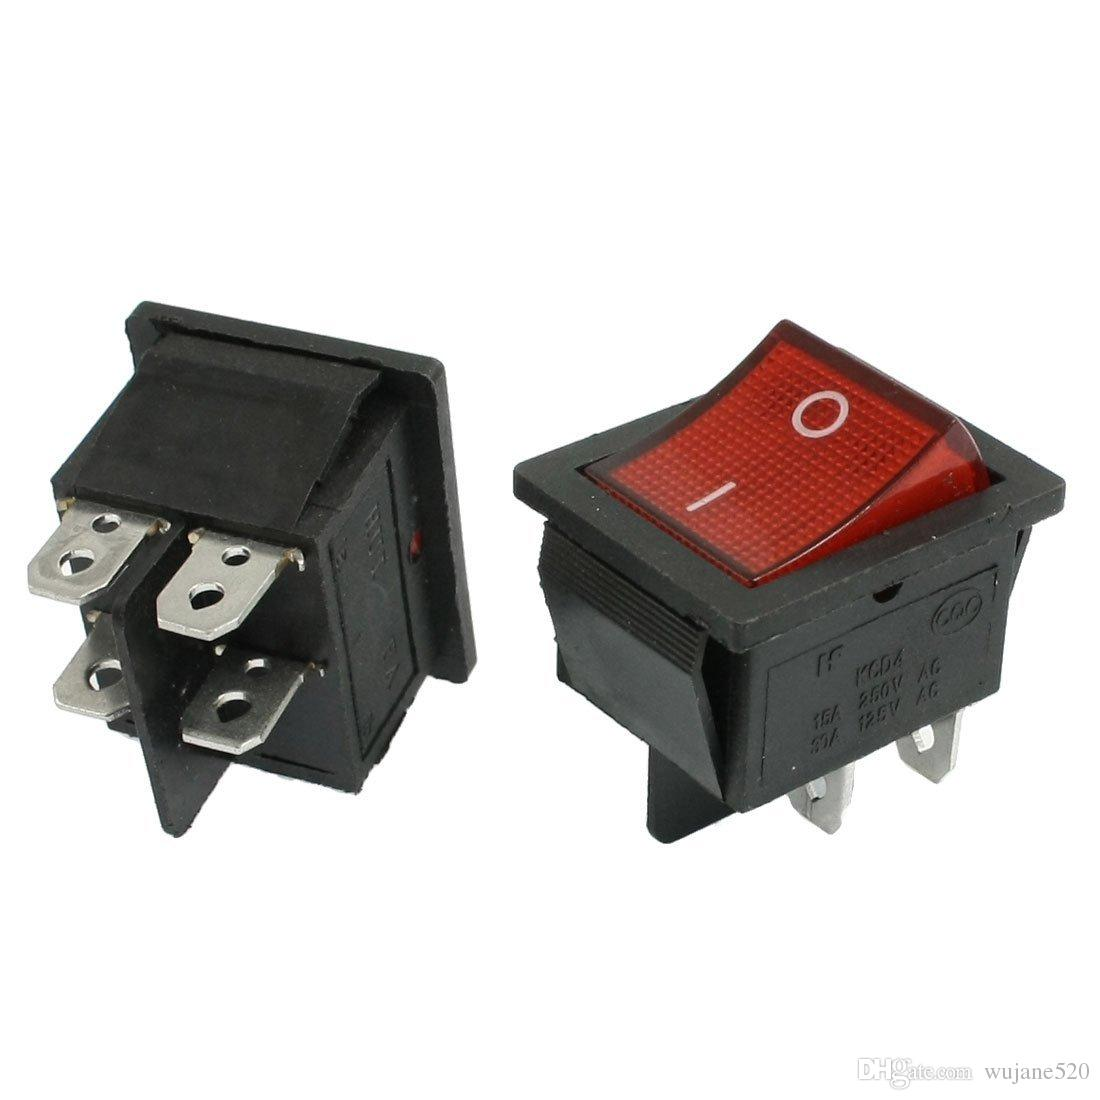 2020 Kcd4 Rocker Switch Dpst 4 Pins On Off 2 Position Switches For Boat Car Automotive Ac 250v 16a 125v 20a Red Green Black From Wujane520 5 39 Dhgate Com